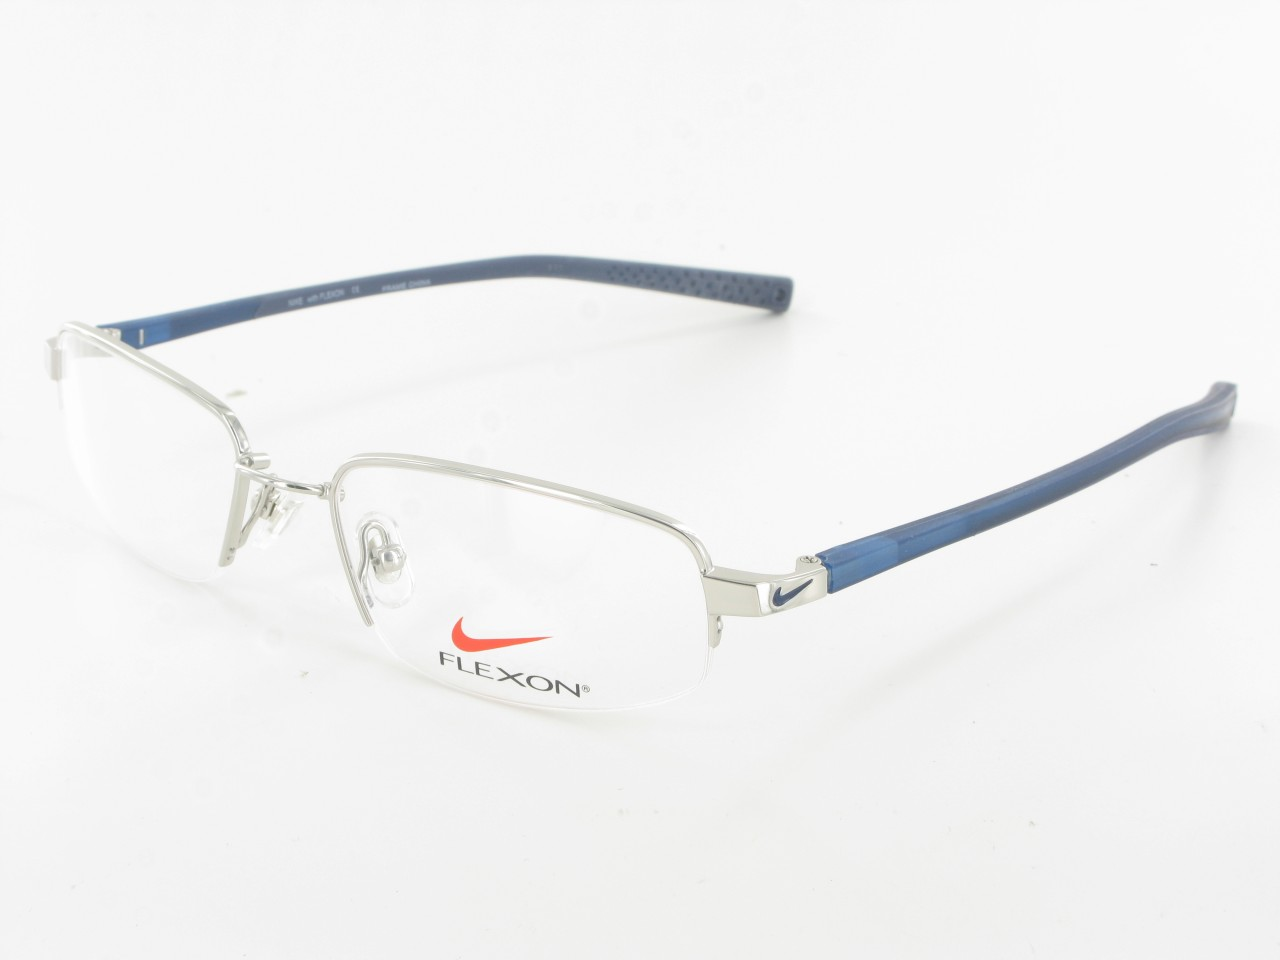 New NIKE FLEXON EYEGLASS FRAMES NK 4182 Sporty Flexible ...